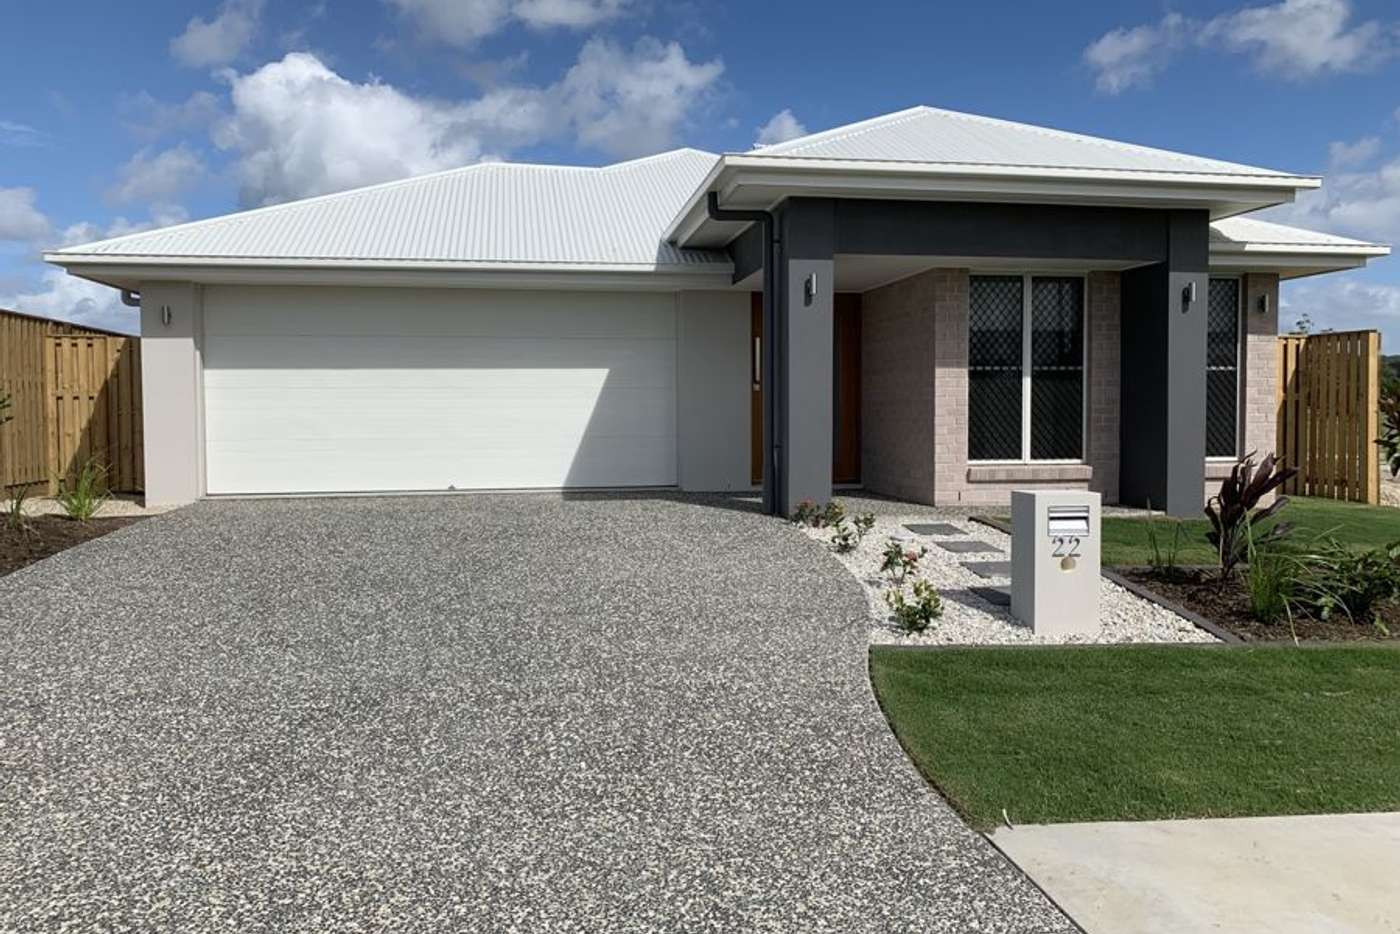 Main view of Homely house listing, 22 Coral St, Pimpama QLD 4209